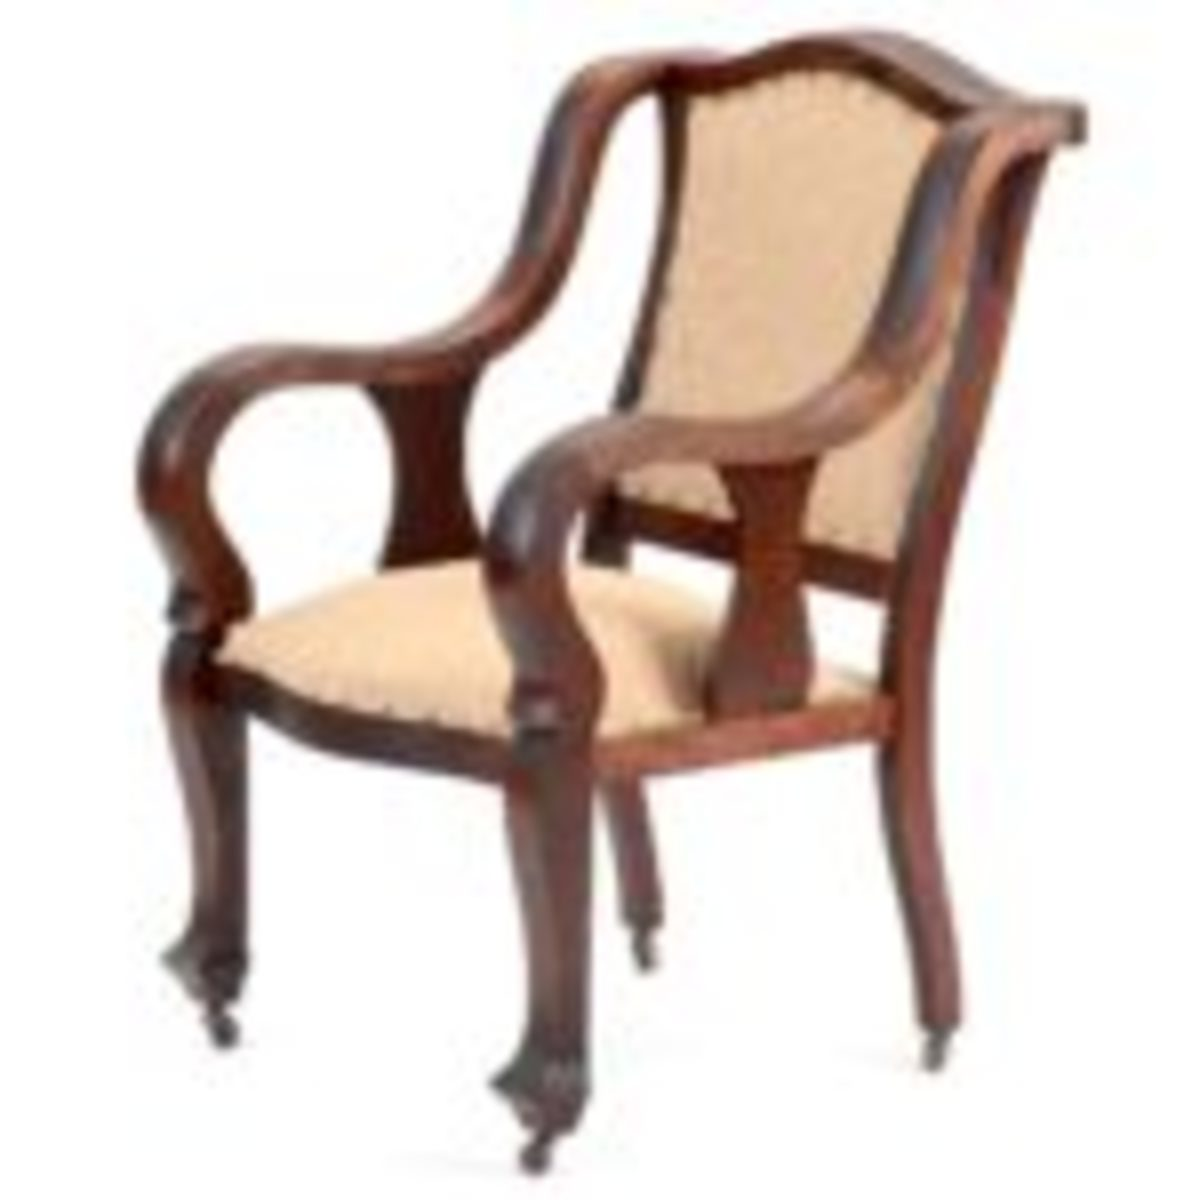 This late Victorian, Empire Revival parlor arm chair is made with a wide birch frame and is stained with a mahogany finish. It sold for $71 at EBTH.com. Courtesy of Everything But The House, www.ebth.com